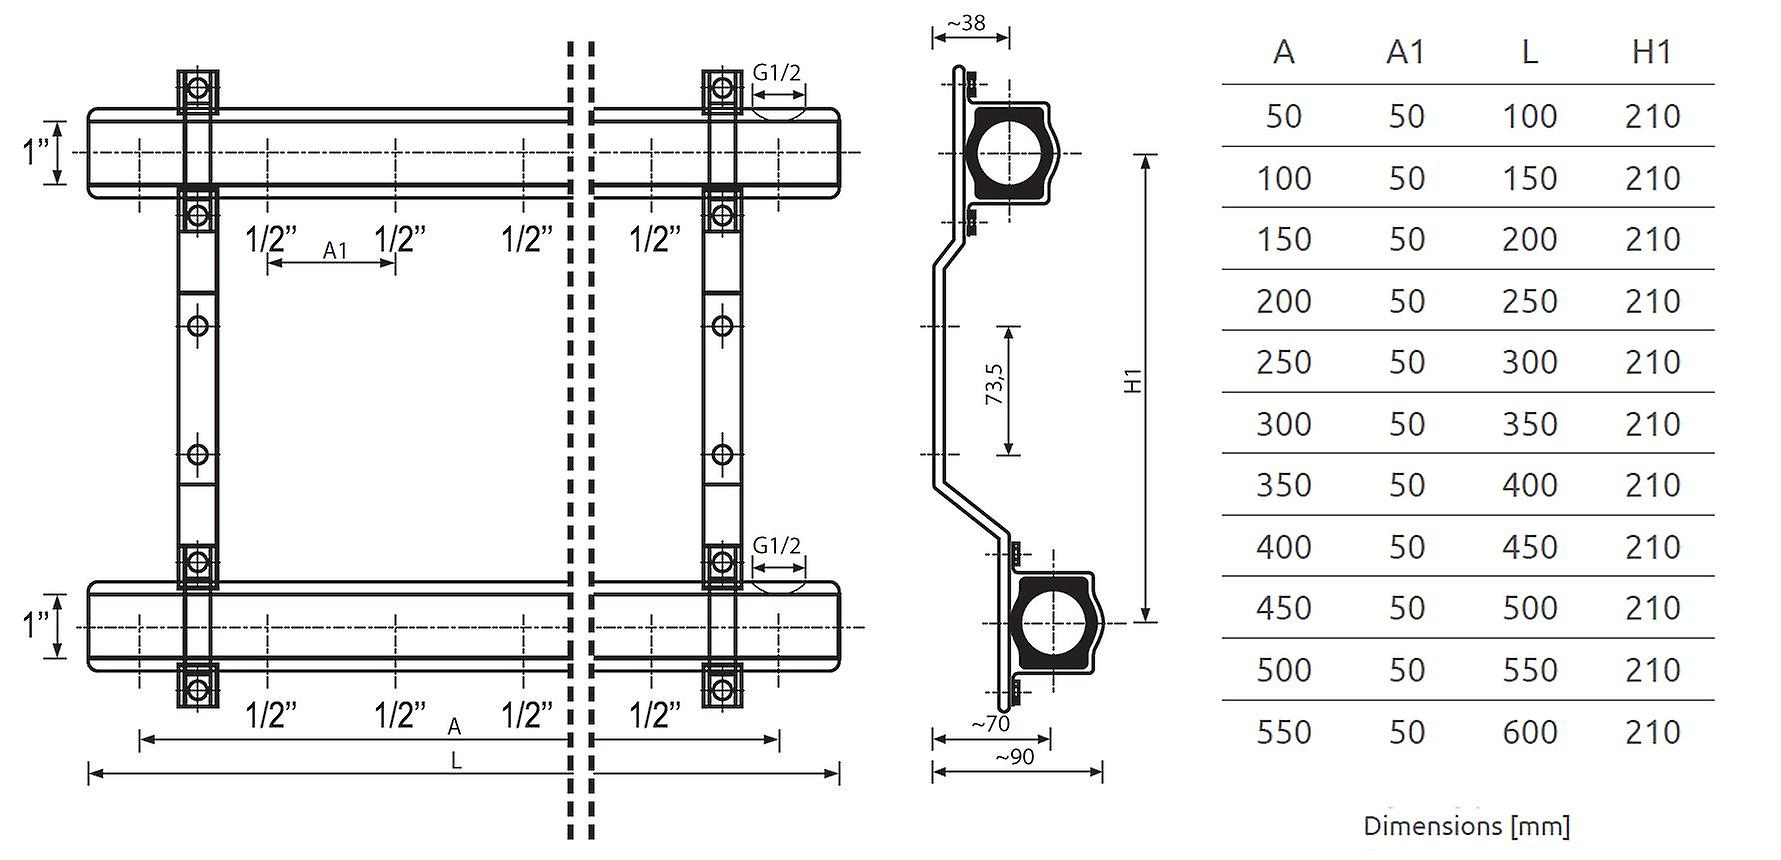 Several Ports Brass Heating Distributor Building Circuit Manifold System